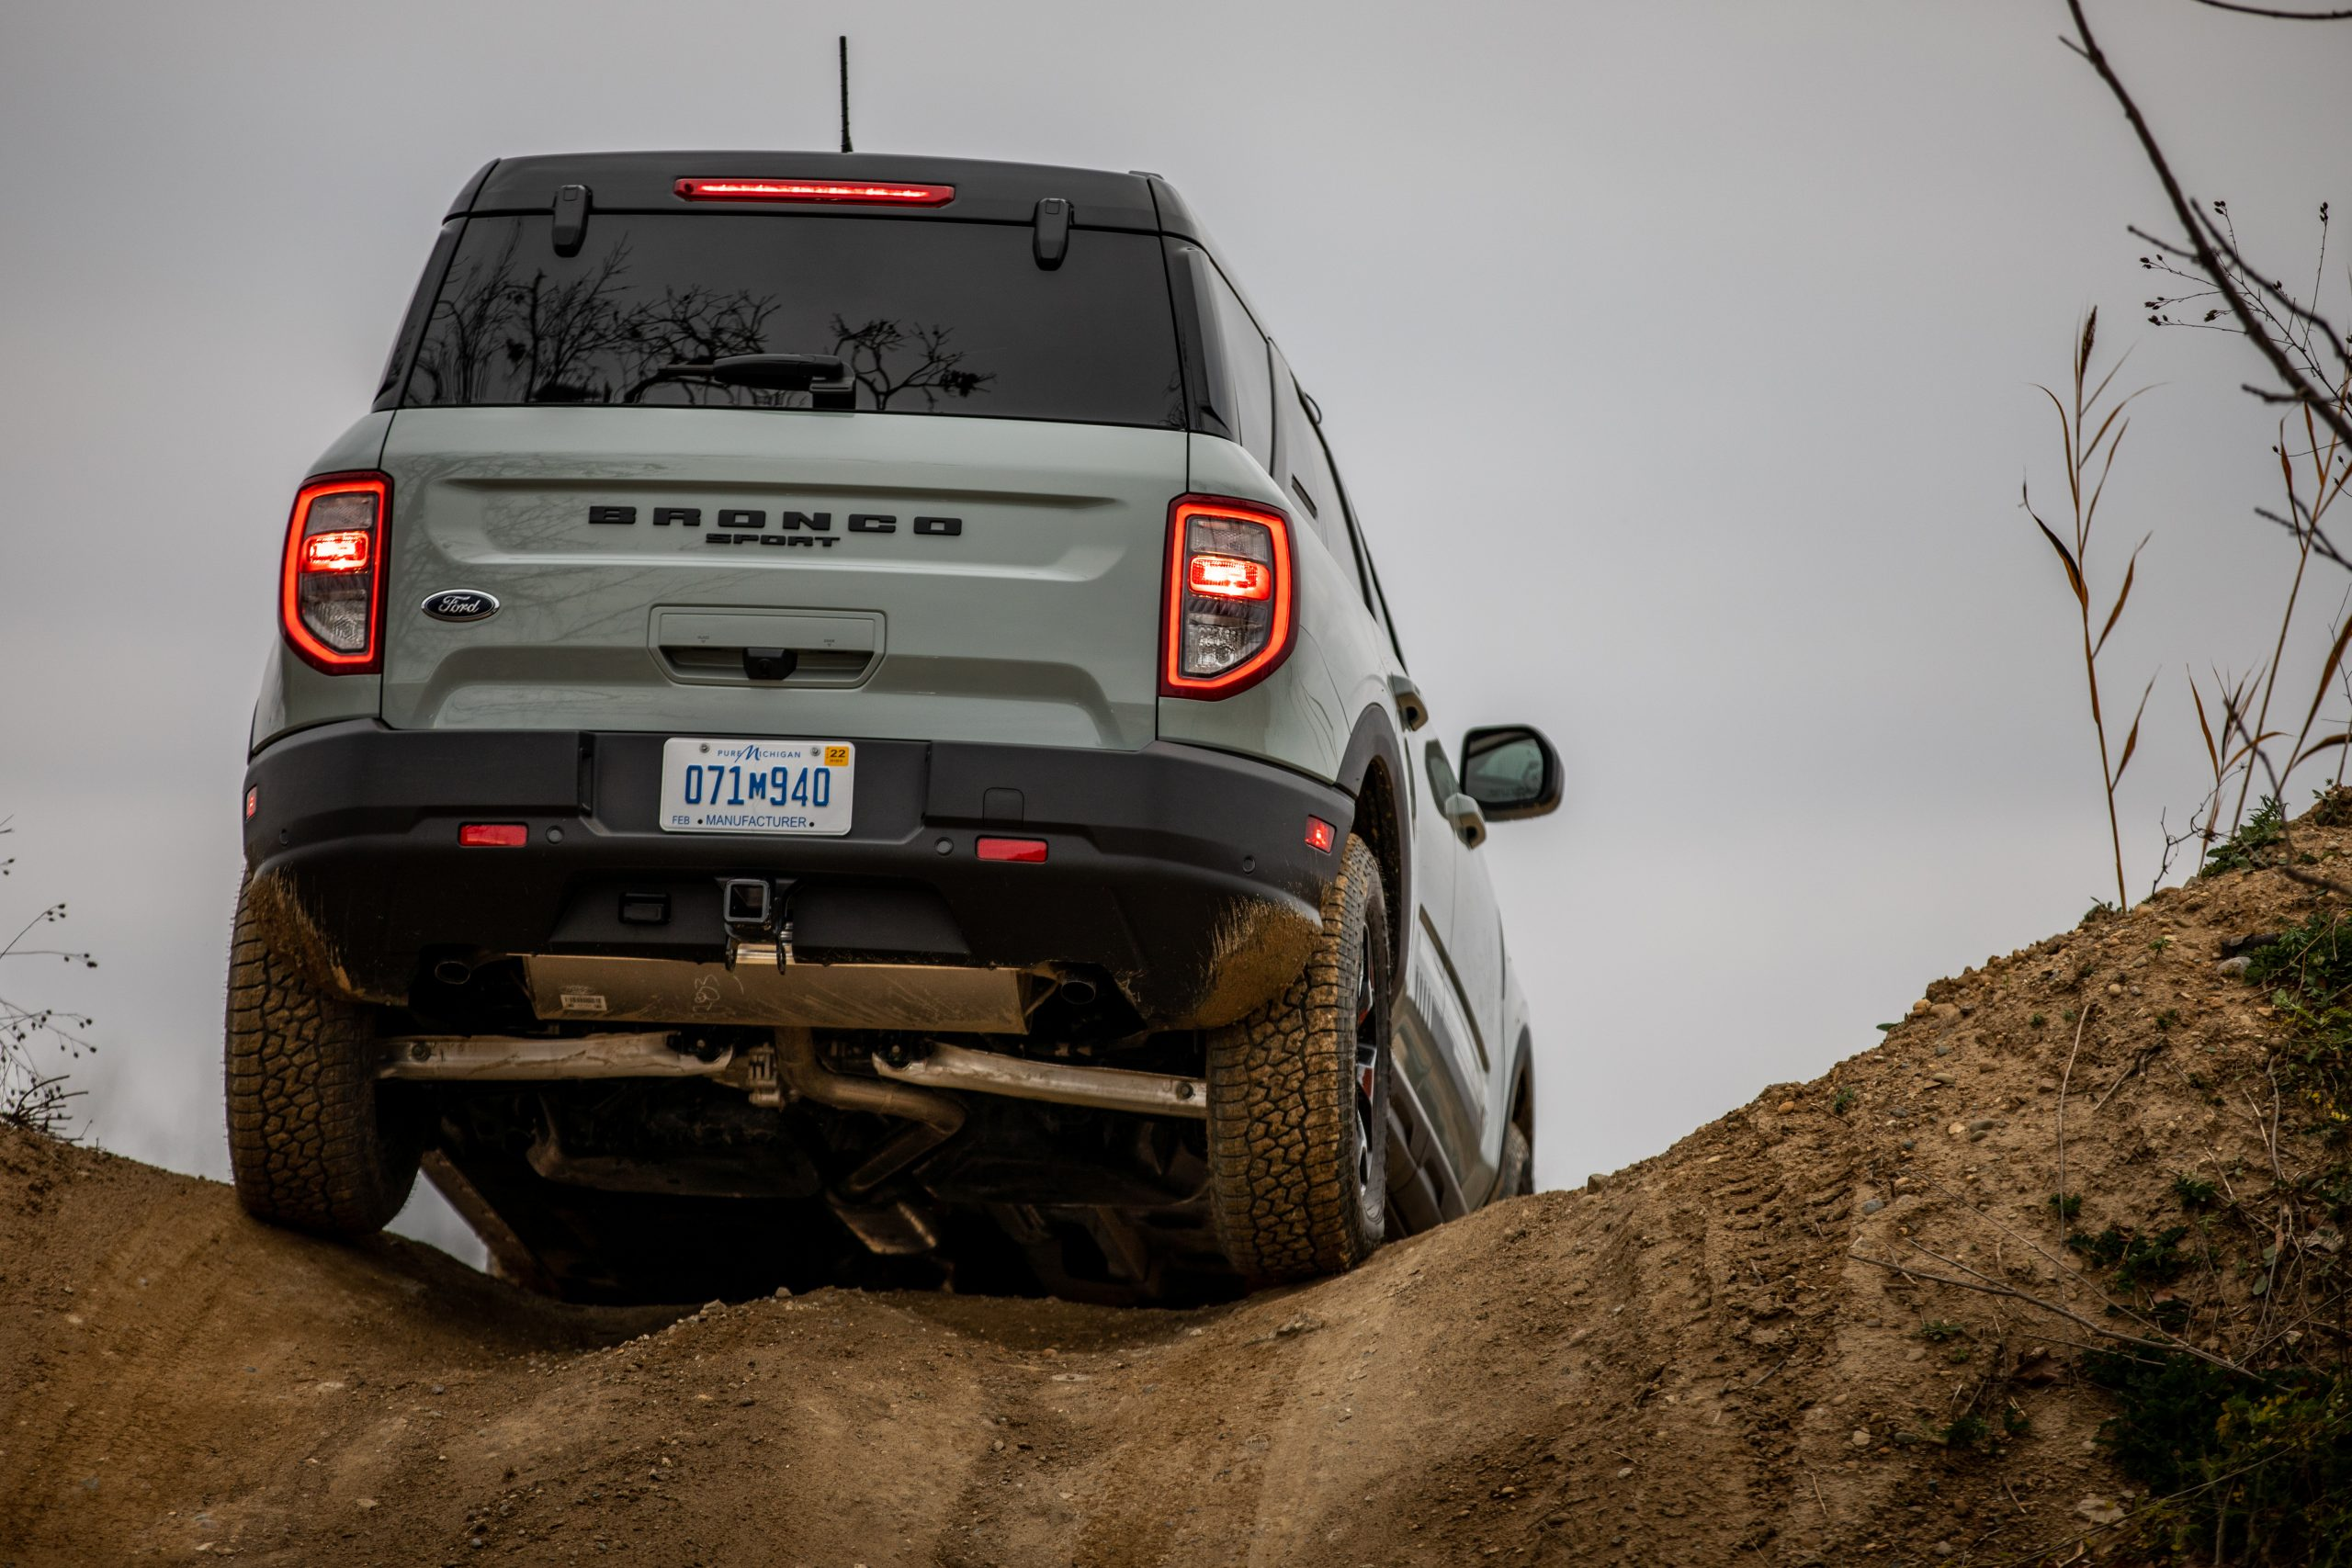 2021 Bronco Sport rear shot over the hill